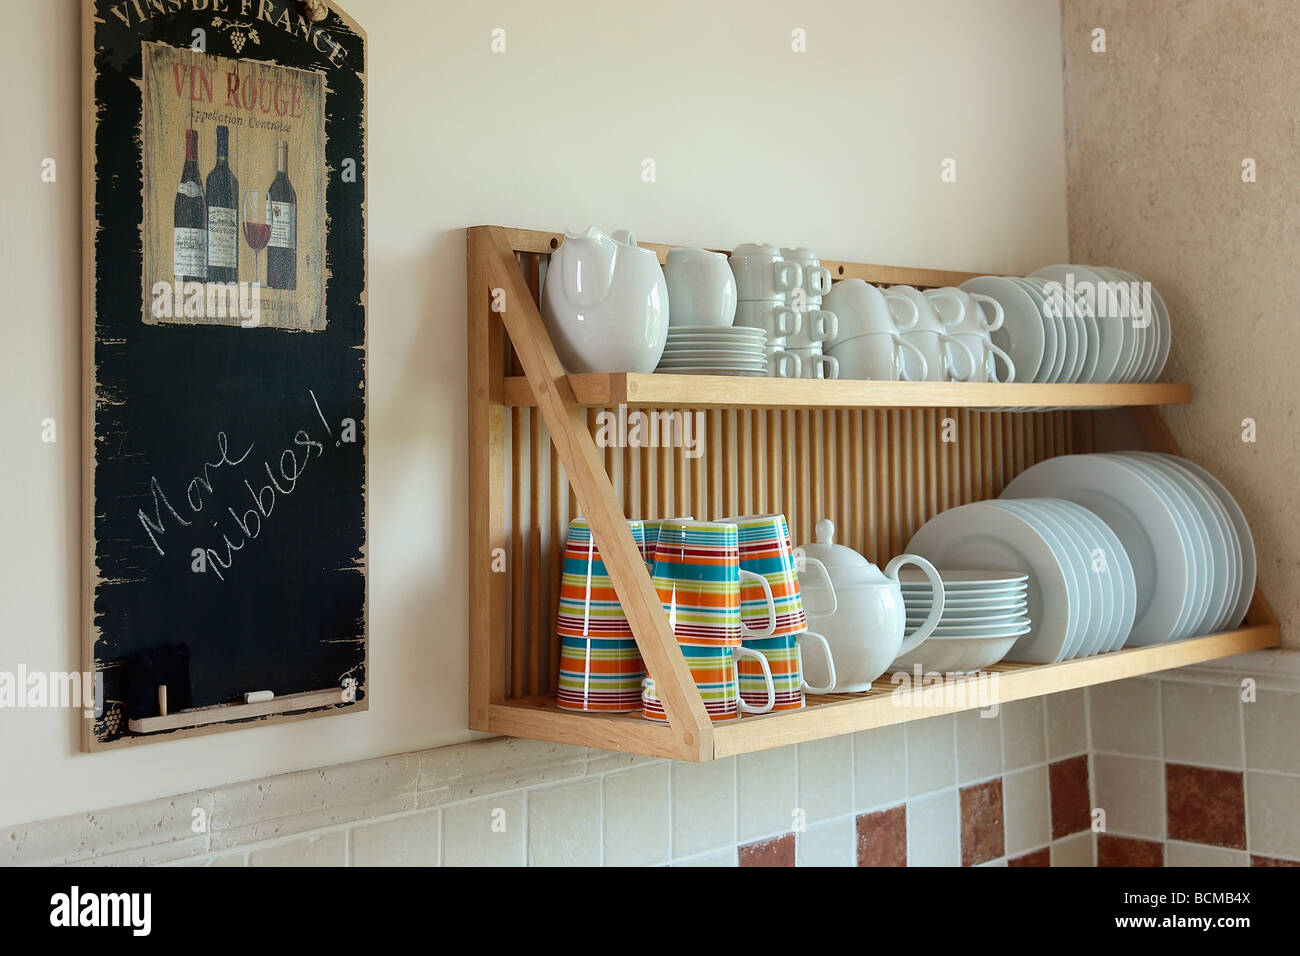 Interiors Traditional Kitchens Plate Racks Stock Photos ...